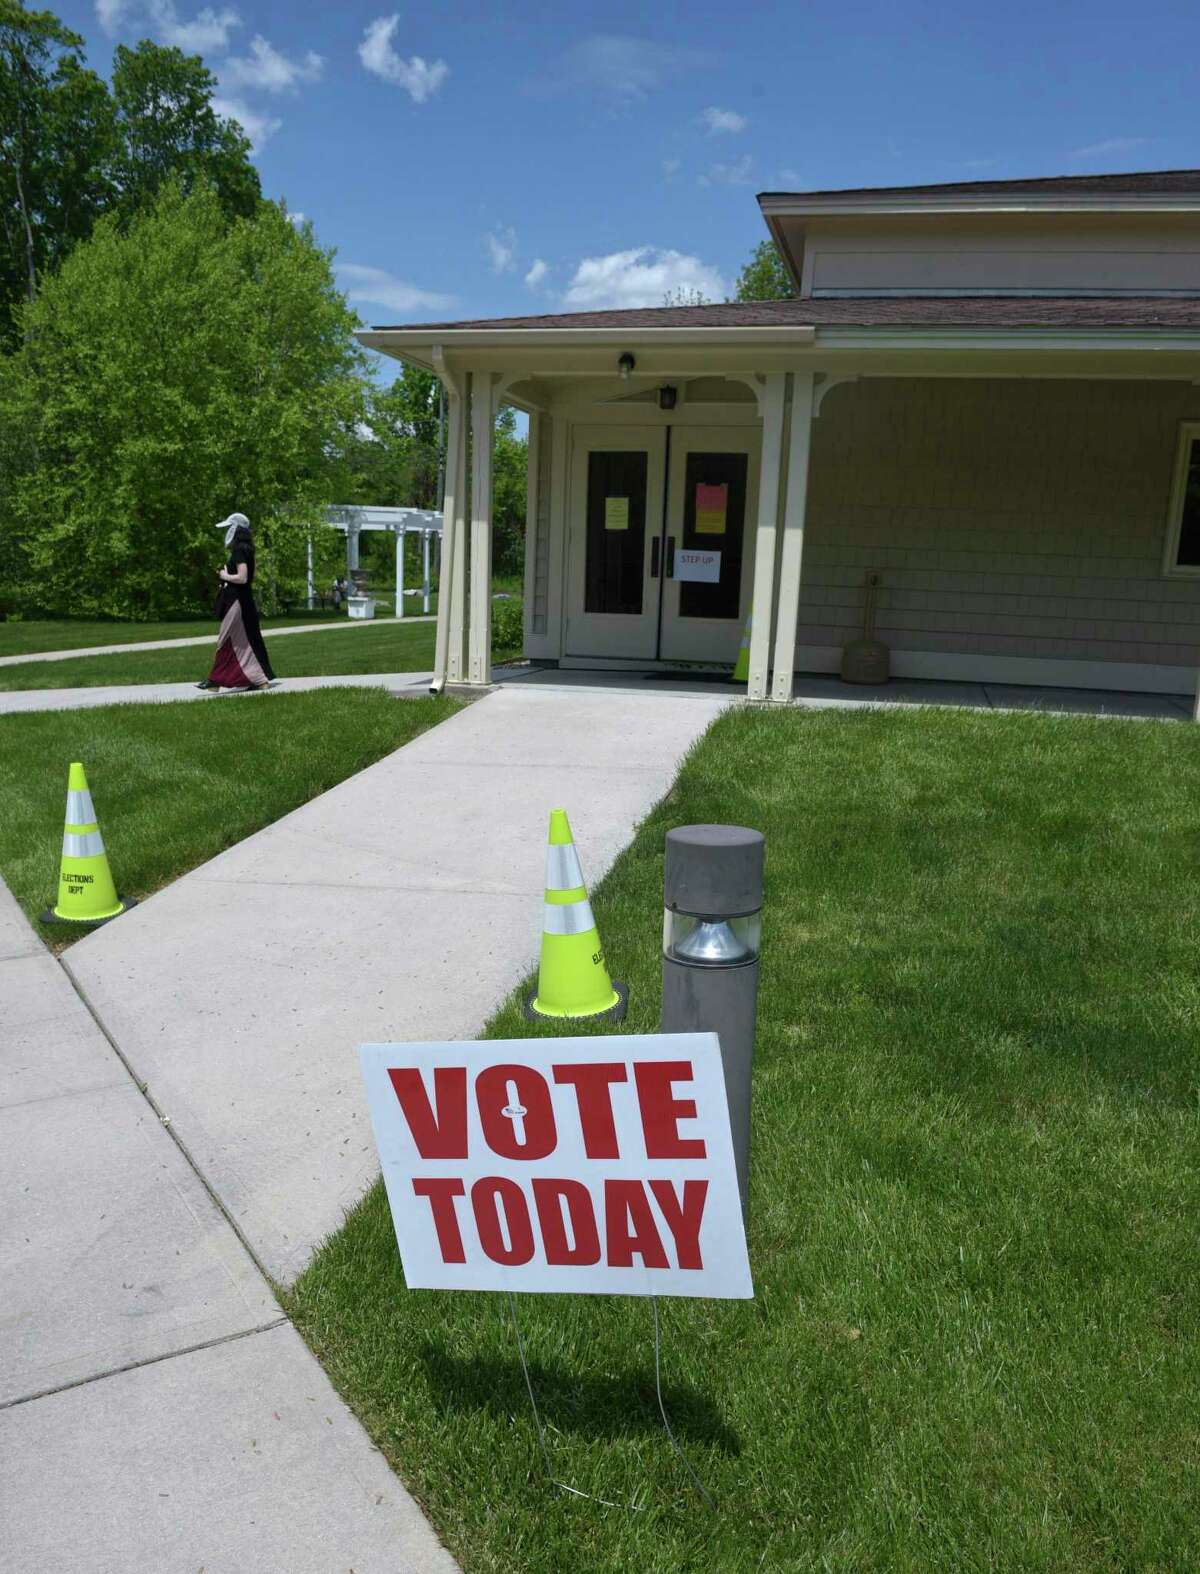 Voting in the Brookfield budget referendum at St Marguerite Bourgeoys Church. The church was used for voting because Huckleberry Hill Elementary School is under construction. Tuesday, May 18, 2021, in Brookfield, Conn.